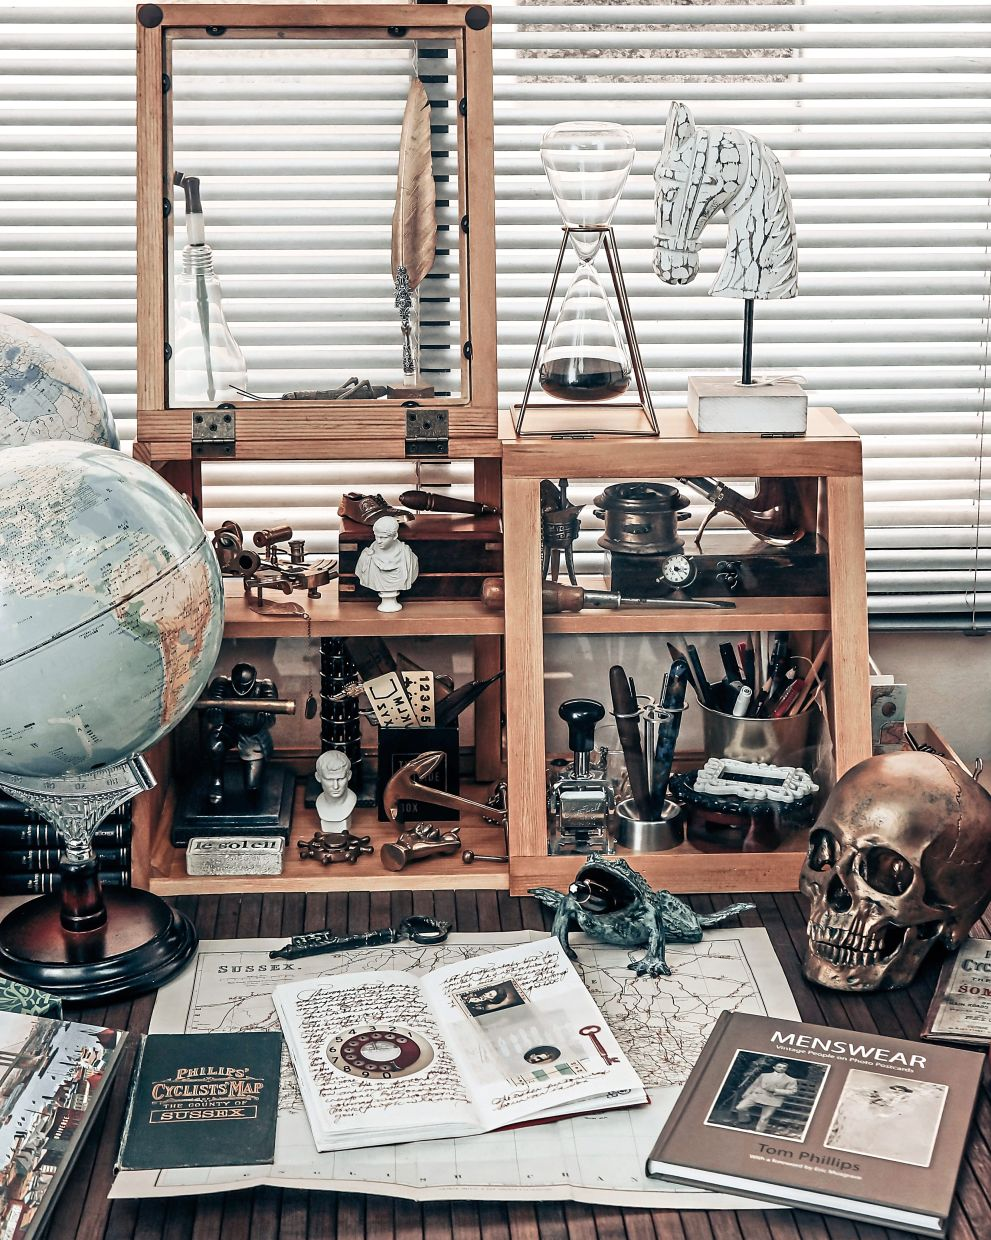 Vintage ornaments, maps and books collected from local flea market and vintage thrift shop are among the items used in Khairul's vintage photography content.